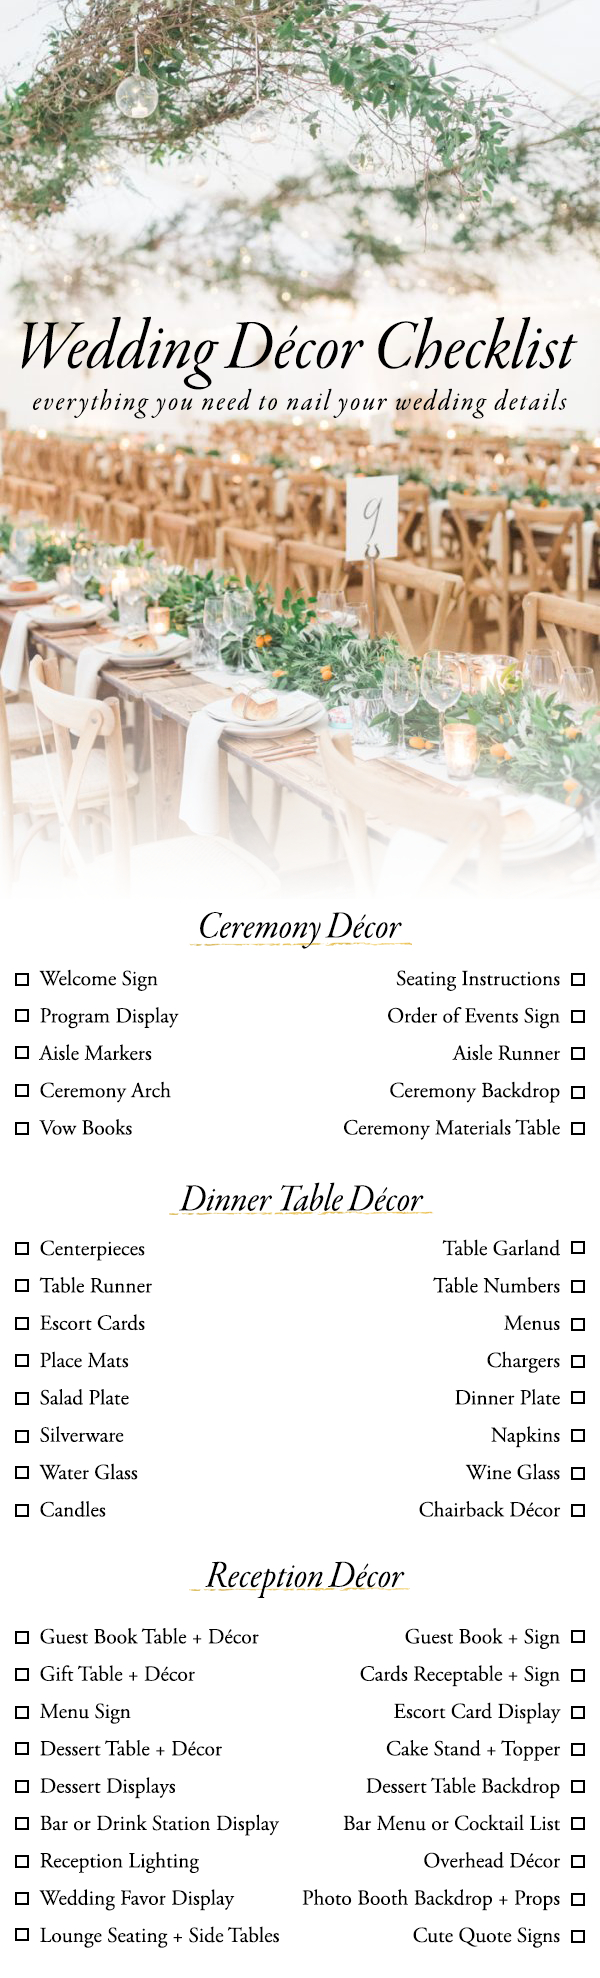 Wedding Stage Decoration Materials Use This Wedding Dcor Checklist To Help You Nail Every Detail